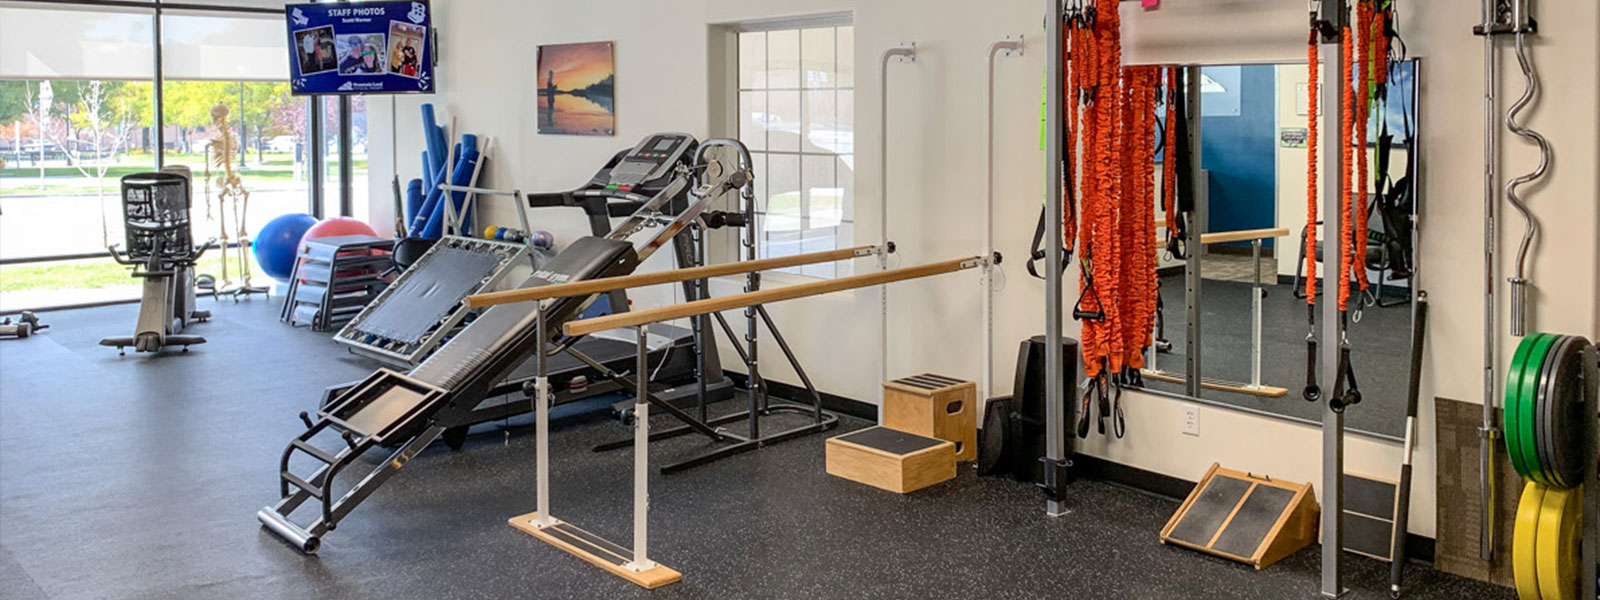 Tooele Physical Therapy